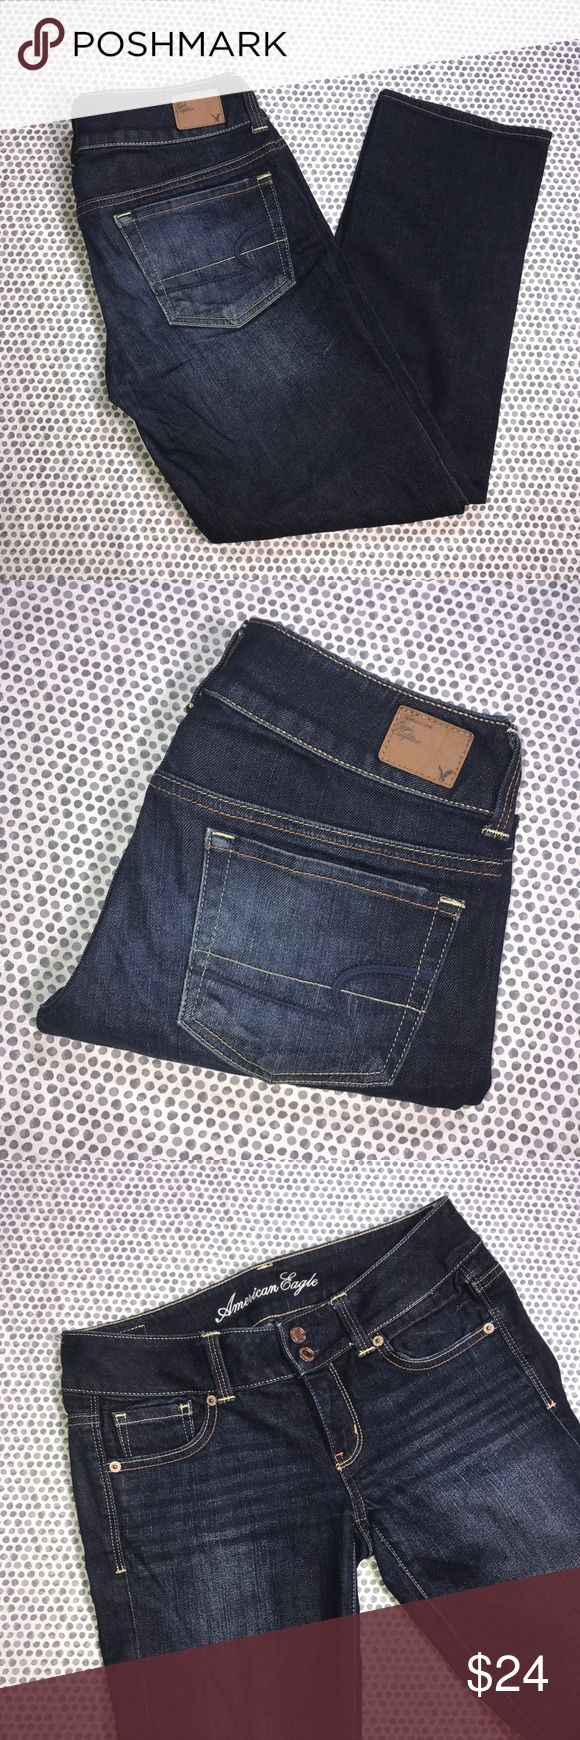 American Eagle Stretch Dark Wash Artist Flare Jean American Eagle Outfitters Stretch Dark Wash Artist Flare  Jeans. Size 2. Pre-owned, but in excellent used condition. No holes, stains or pilling. Measurements: Waist laying flat is 14 1/2 inches. Length is 33 inches. Inseam is 25 1/2 inches. Rise is 7 inches. American Eagle Outfitters Jeans Flare & Wide Leg